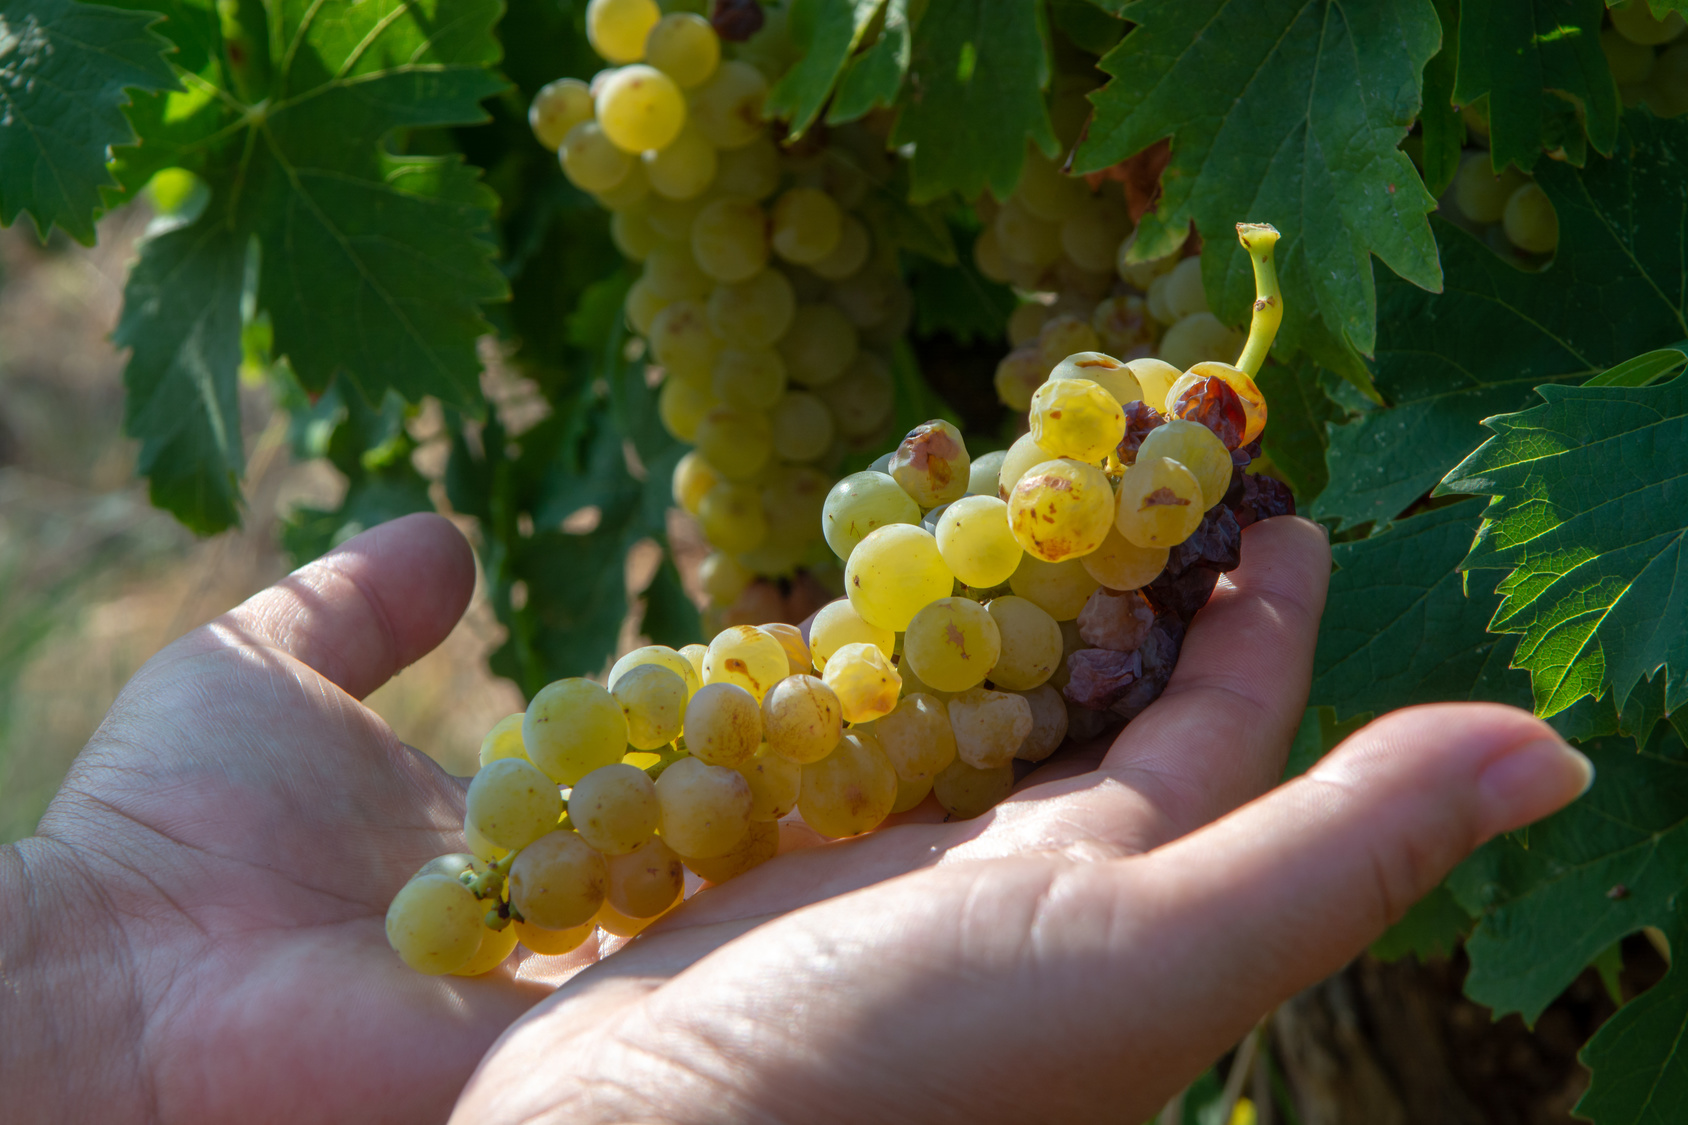 Ripe white wine grapes plants on vineyard in France, white ripe muscat grape new harvest close up